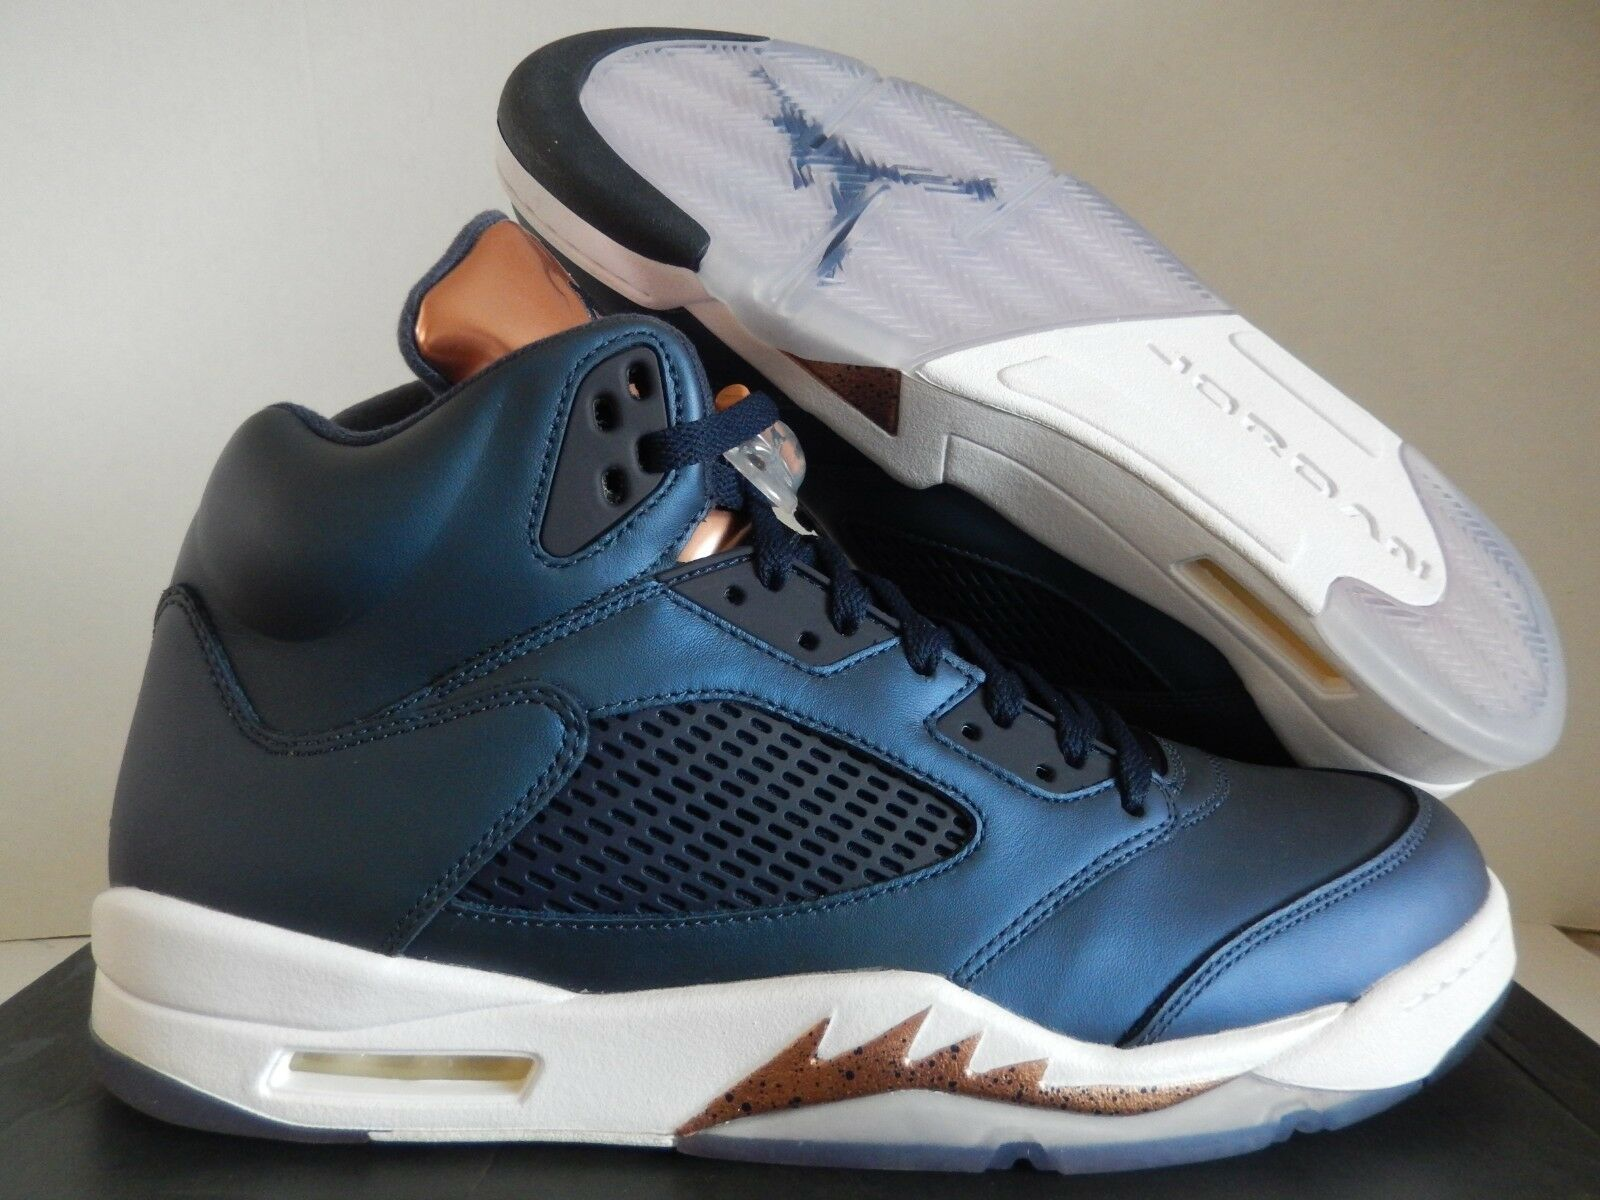 buy online 23c71 d32cd Nike Air Jordan 5 Retro Obsidian Blue-gold Bronze Medal Sz 15 136027-416